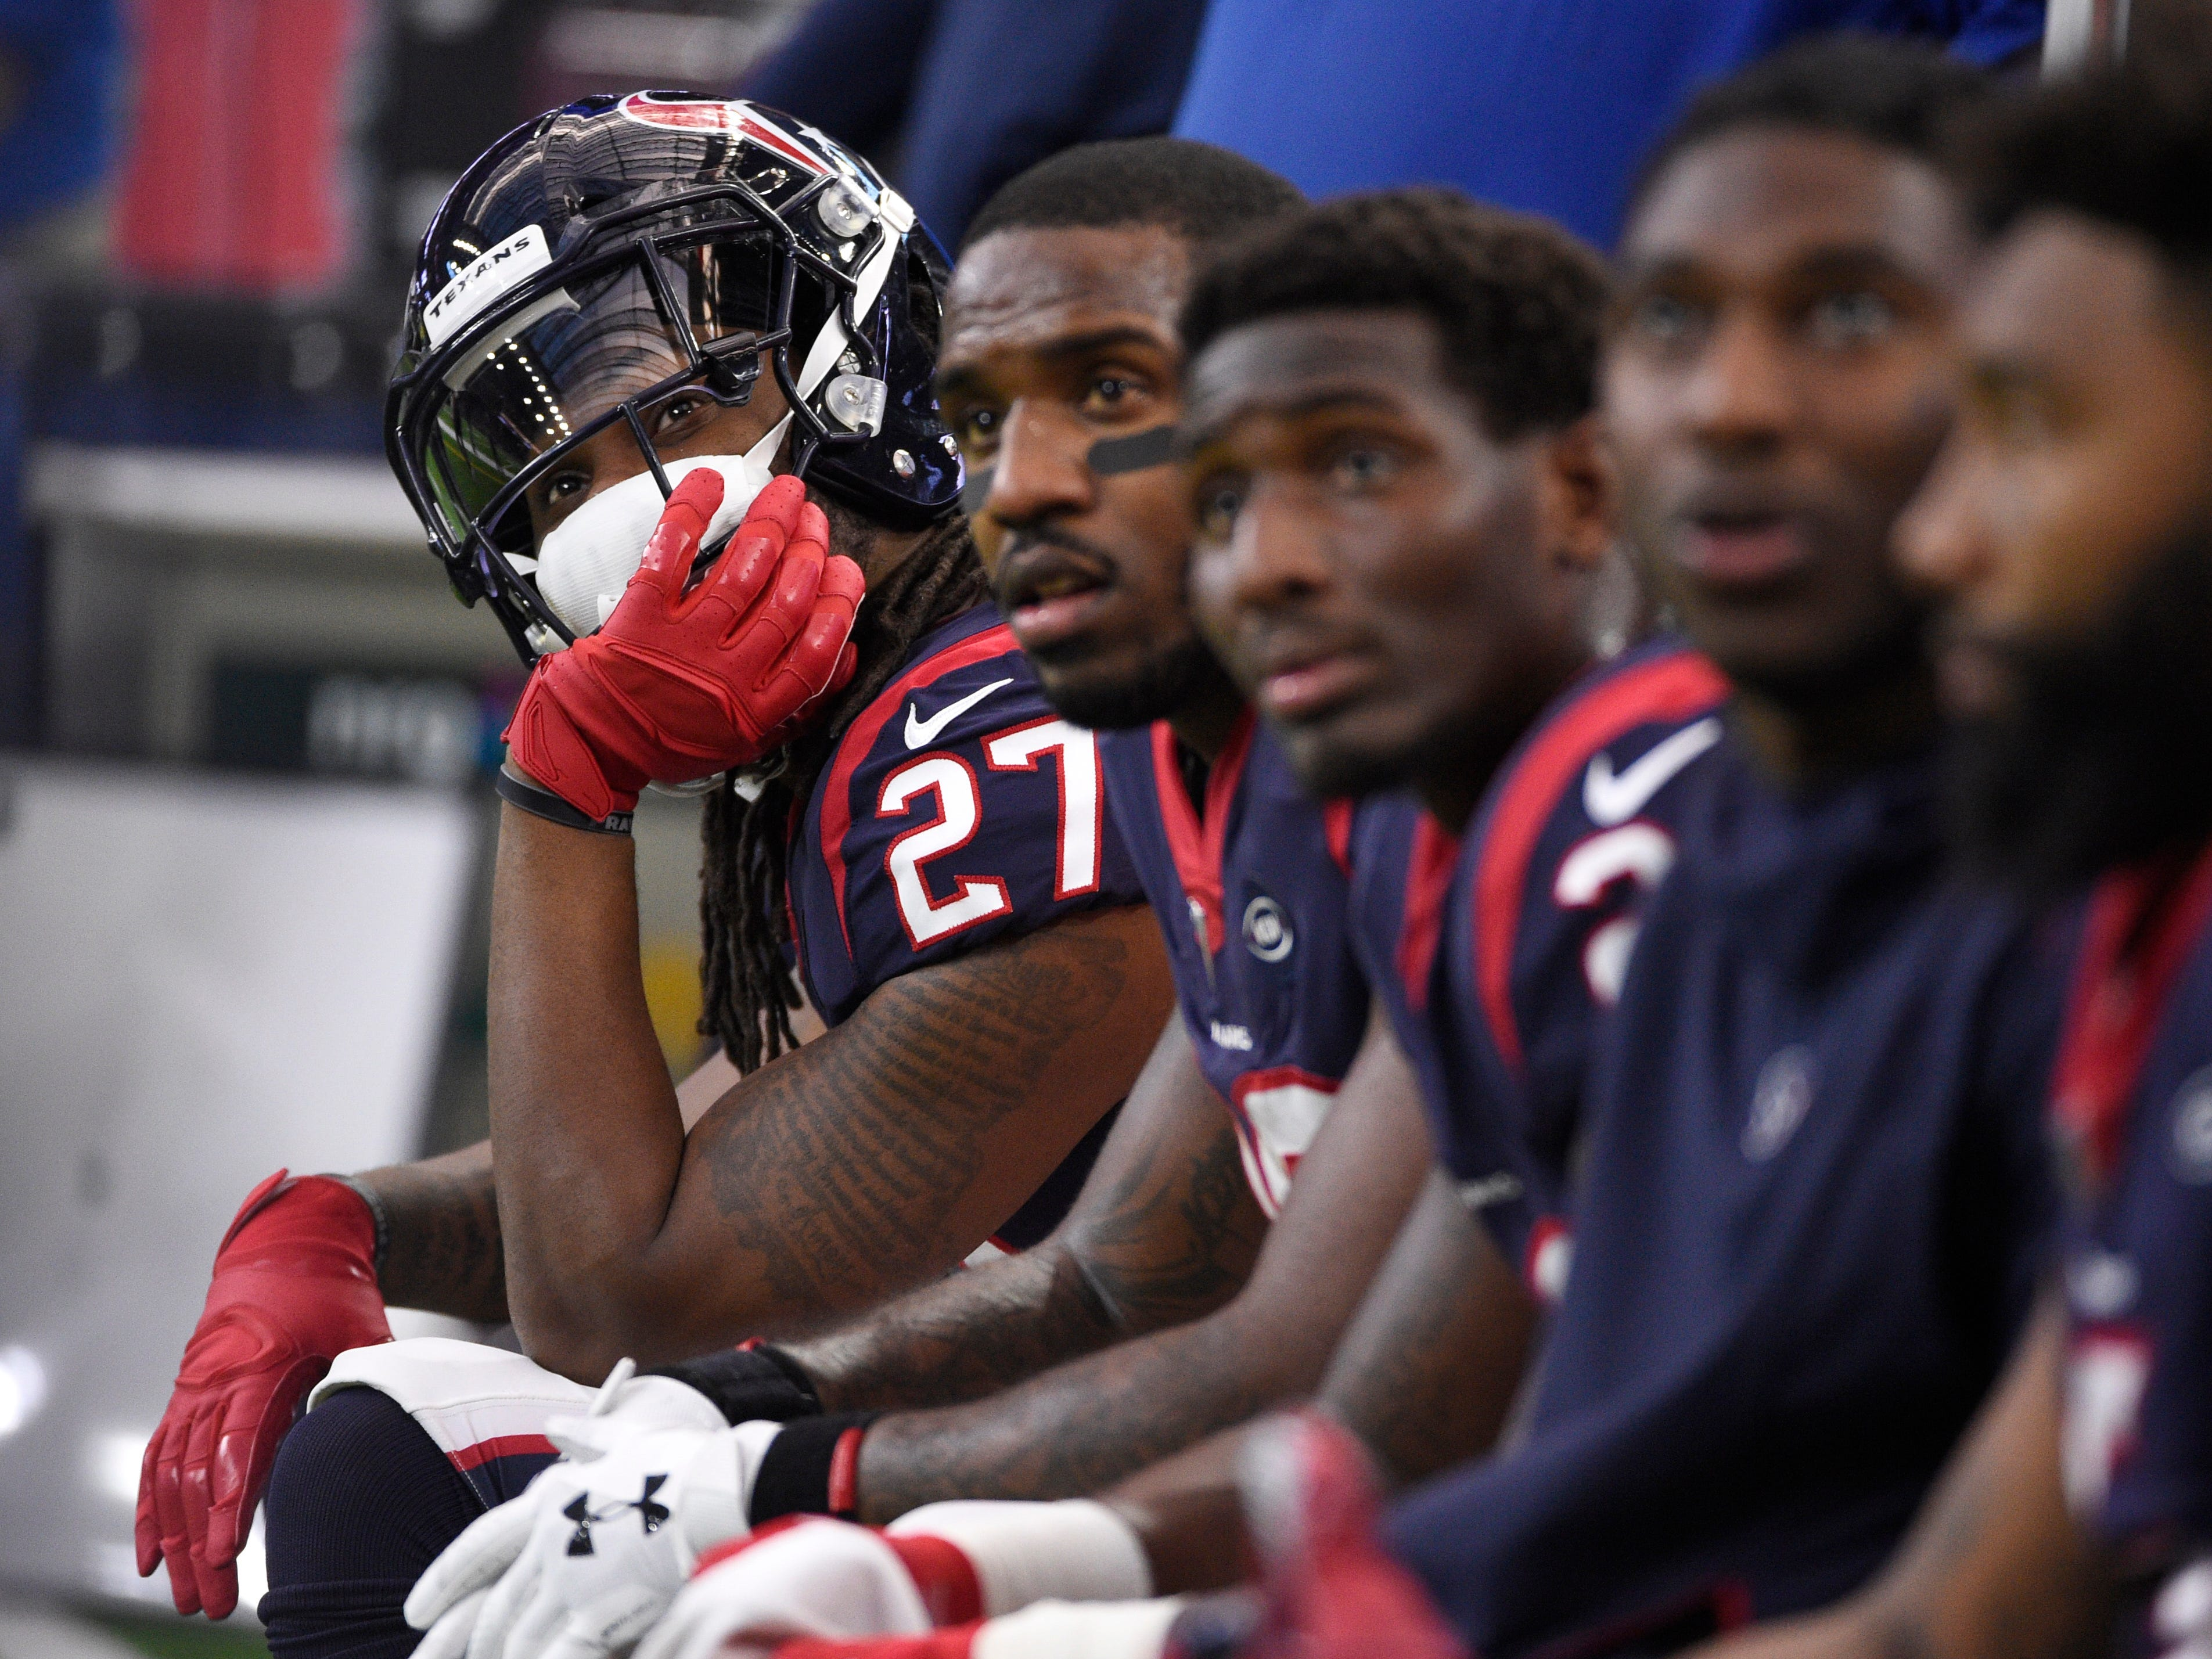 Houston Texans running back D'Onta Foreman (27) sit on the bench with teammates during the first half of an NFL wild card playoff football game against the Indianapolis Colts, Saturday, Jan. 5, 2019, in Houston. (AP Photo/Eric Christian Smith) ORG XMIT: TXEG130